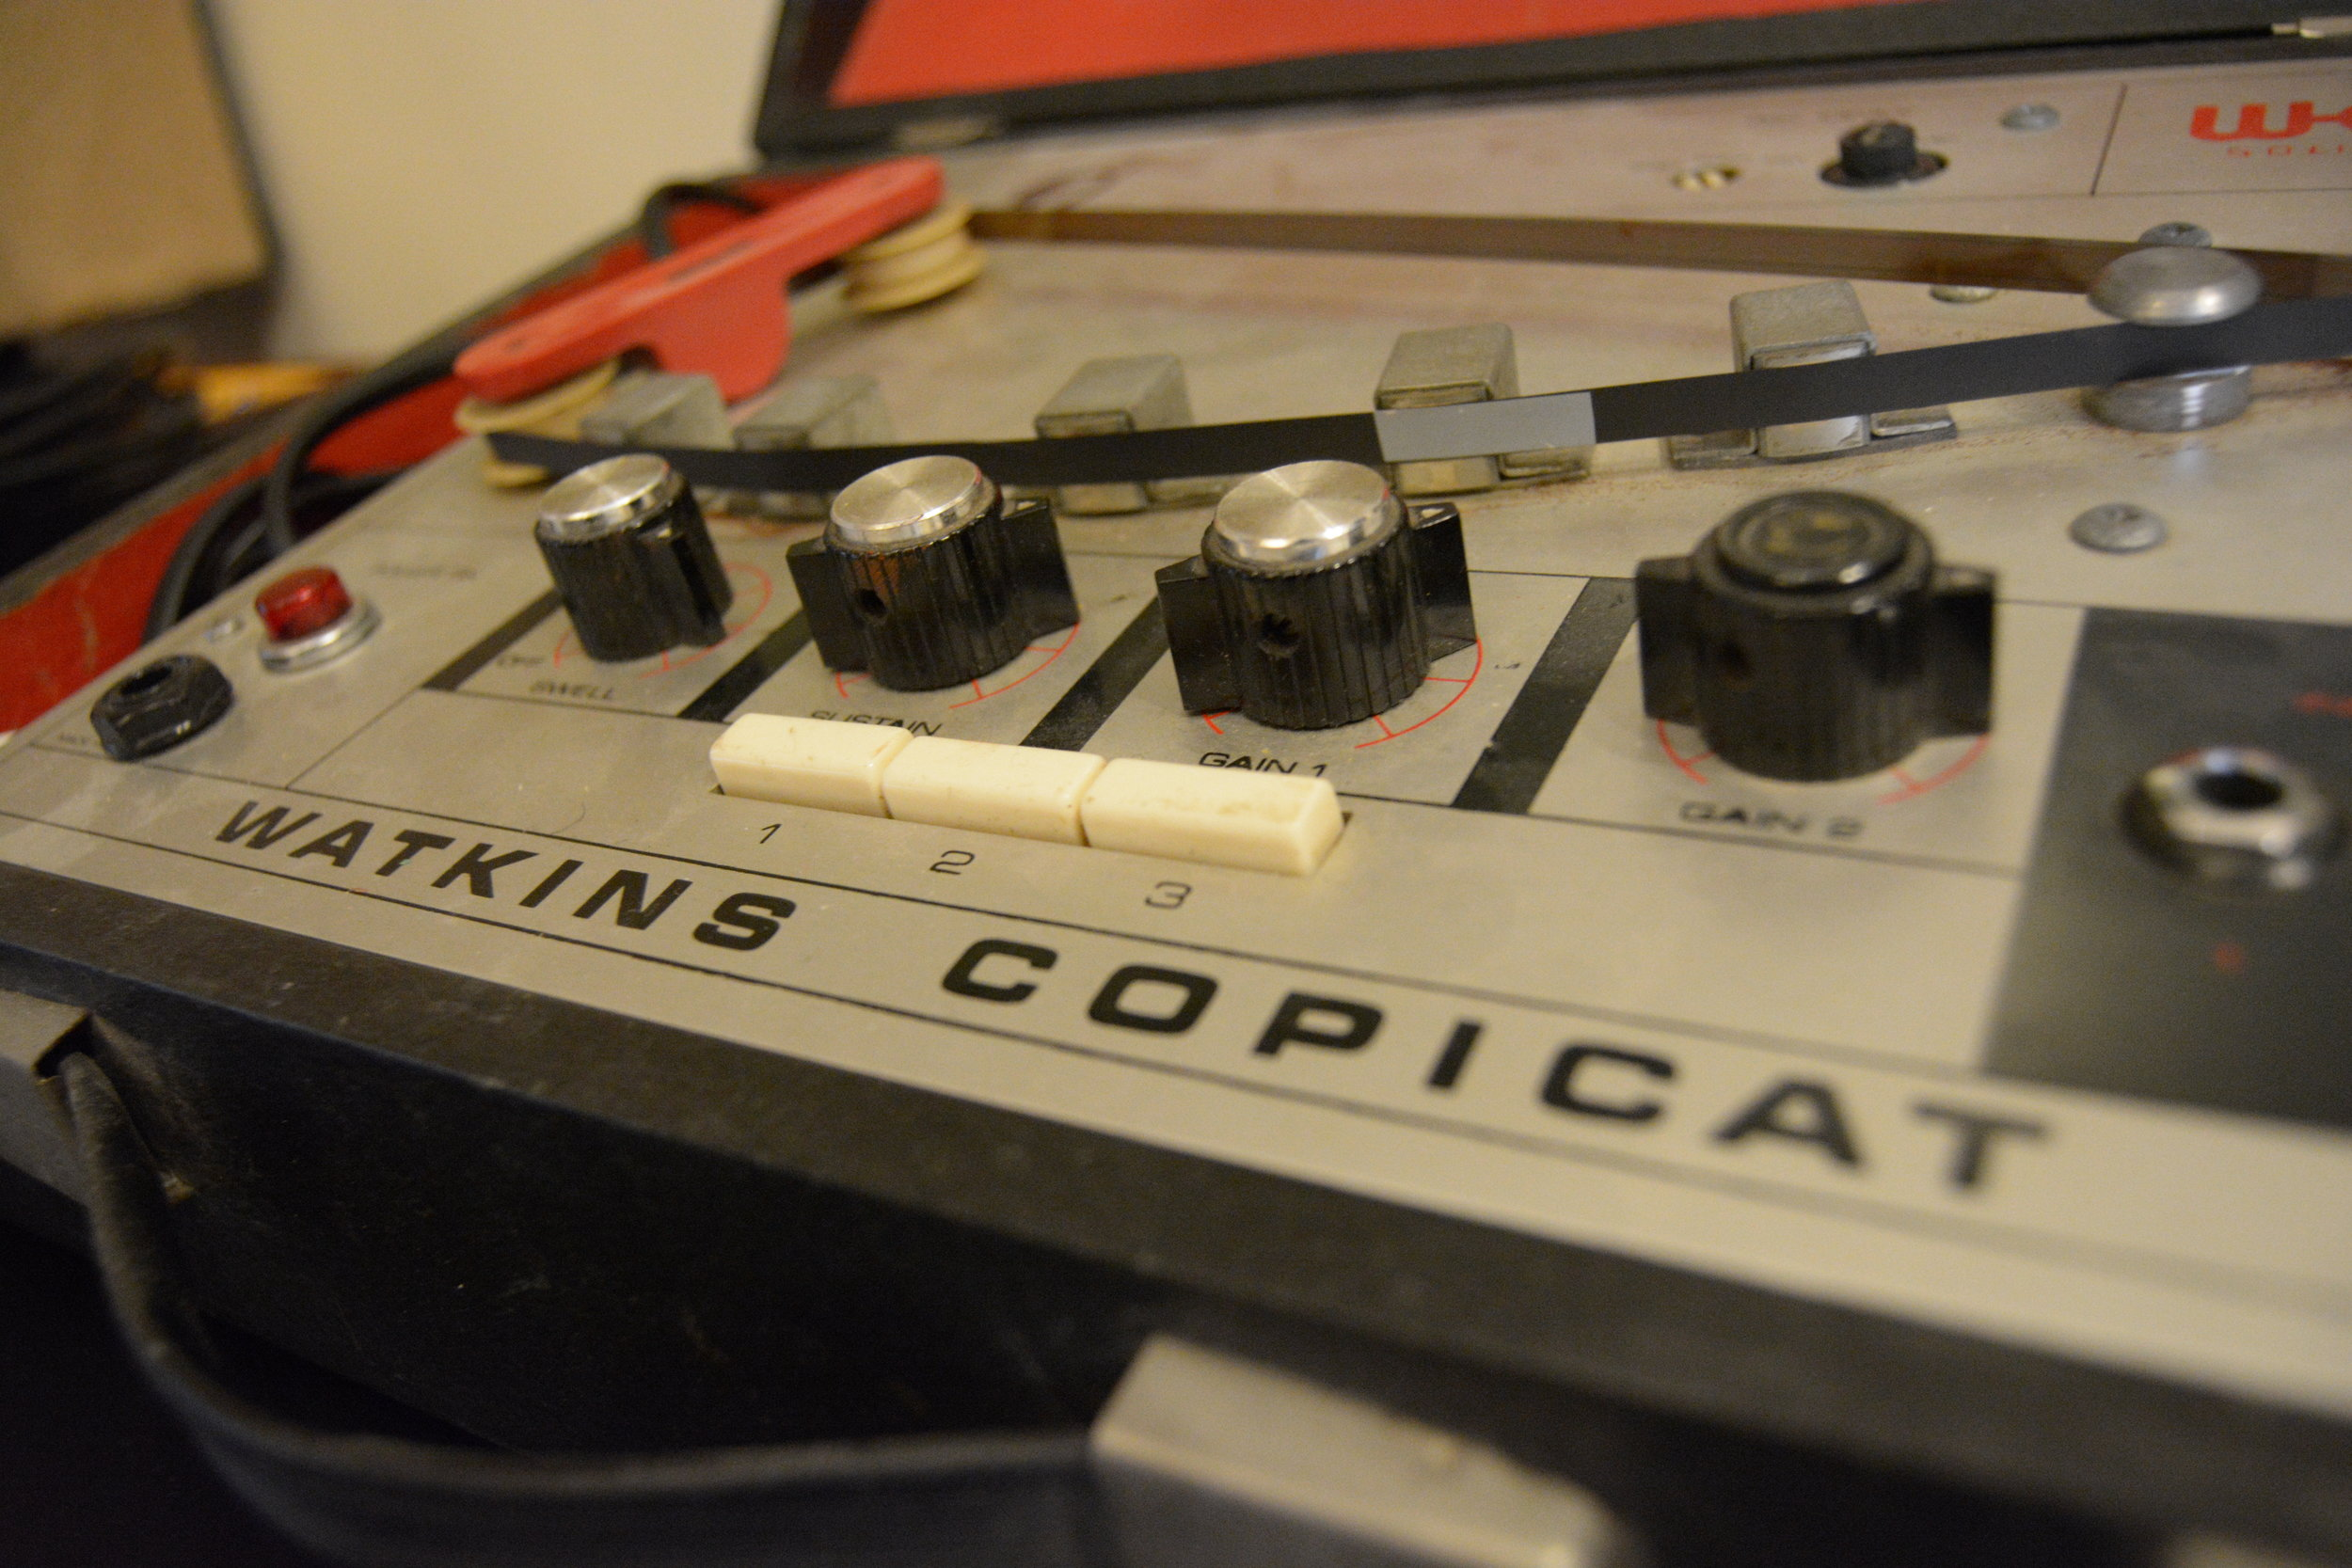 The Watkins Copicat, getting ready to chew on some fresh tape loops